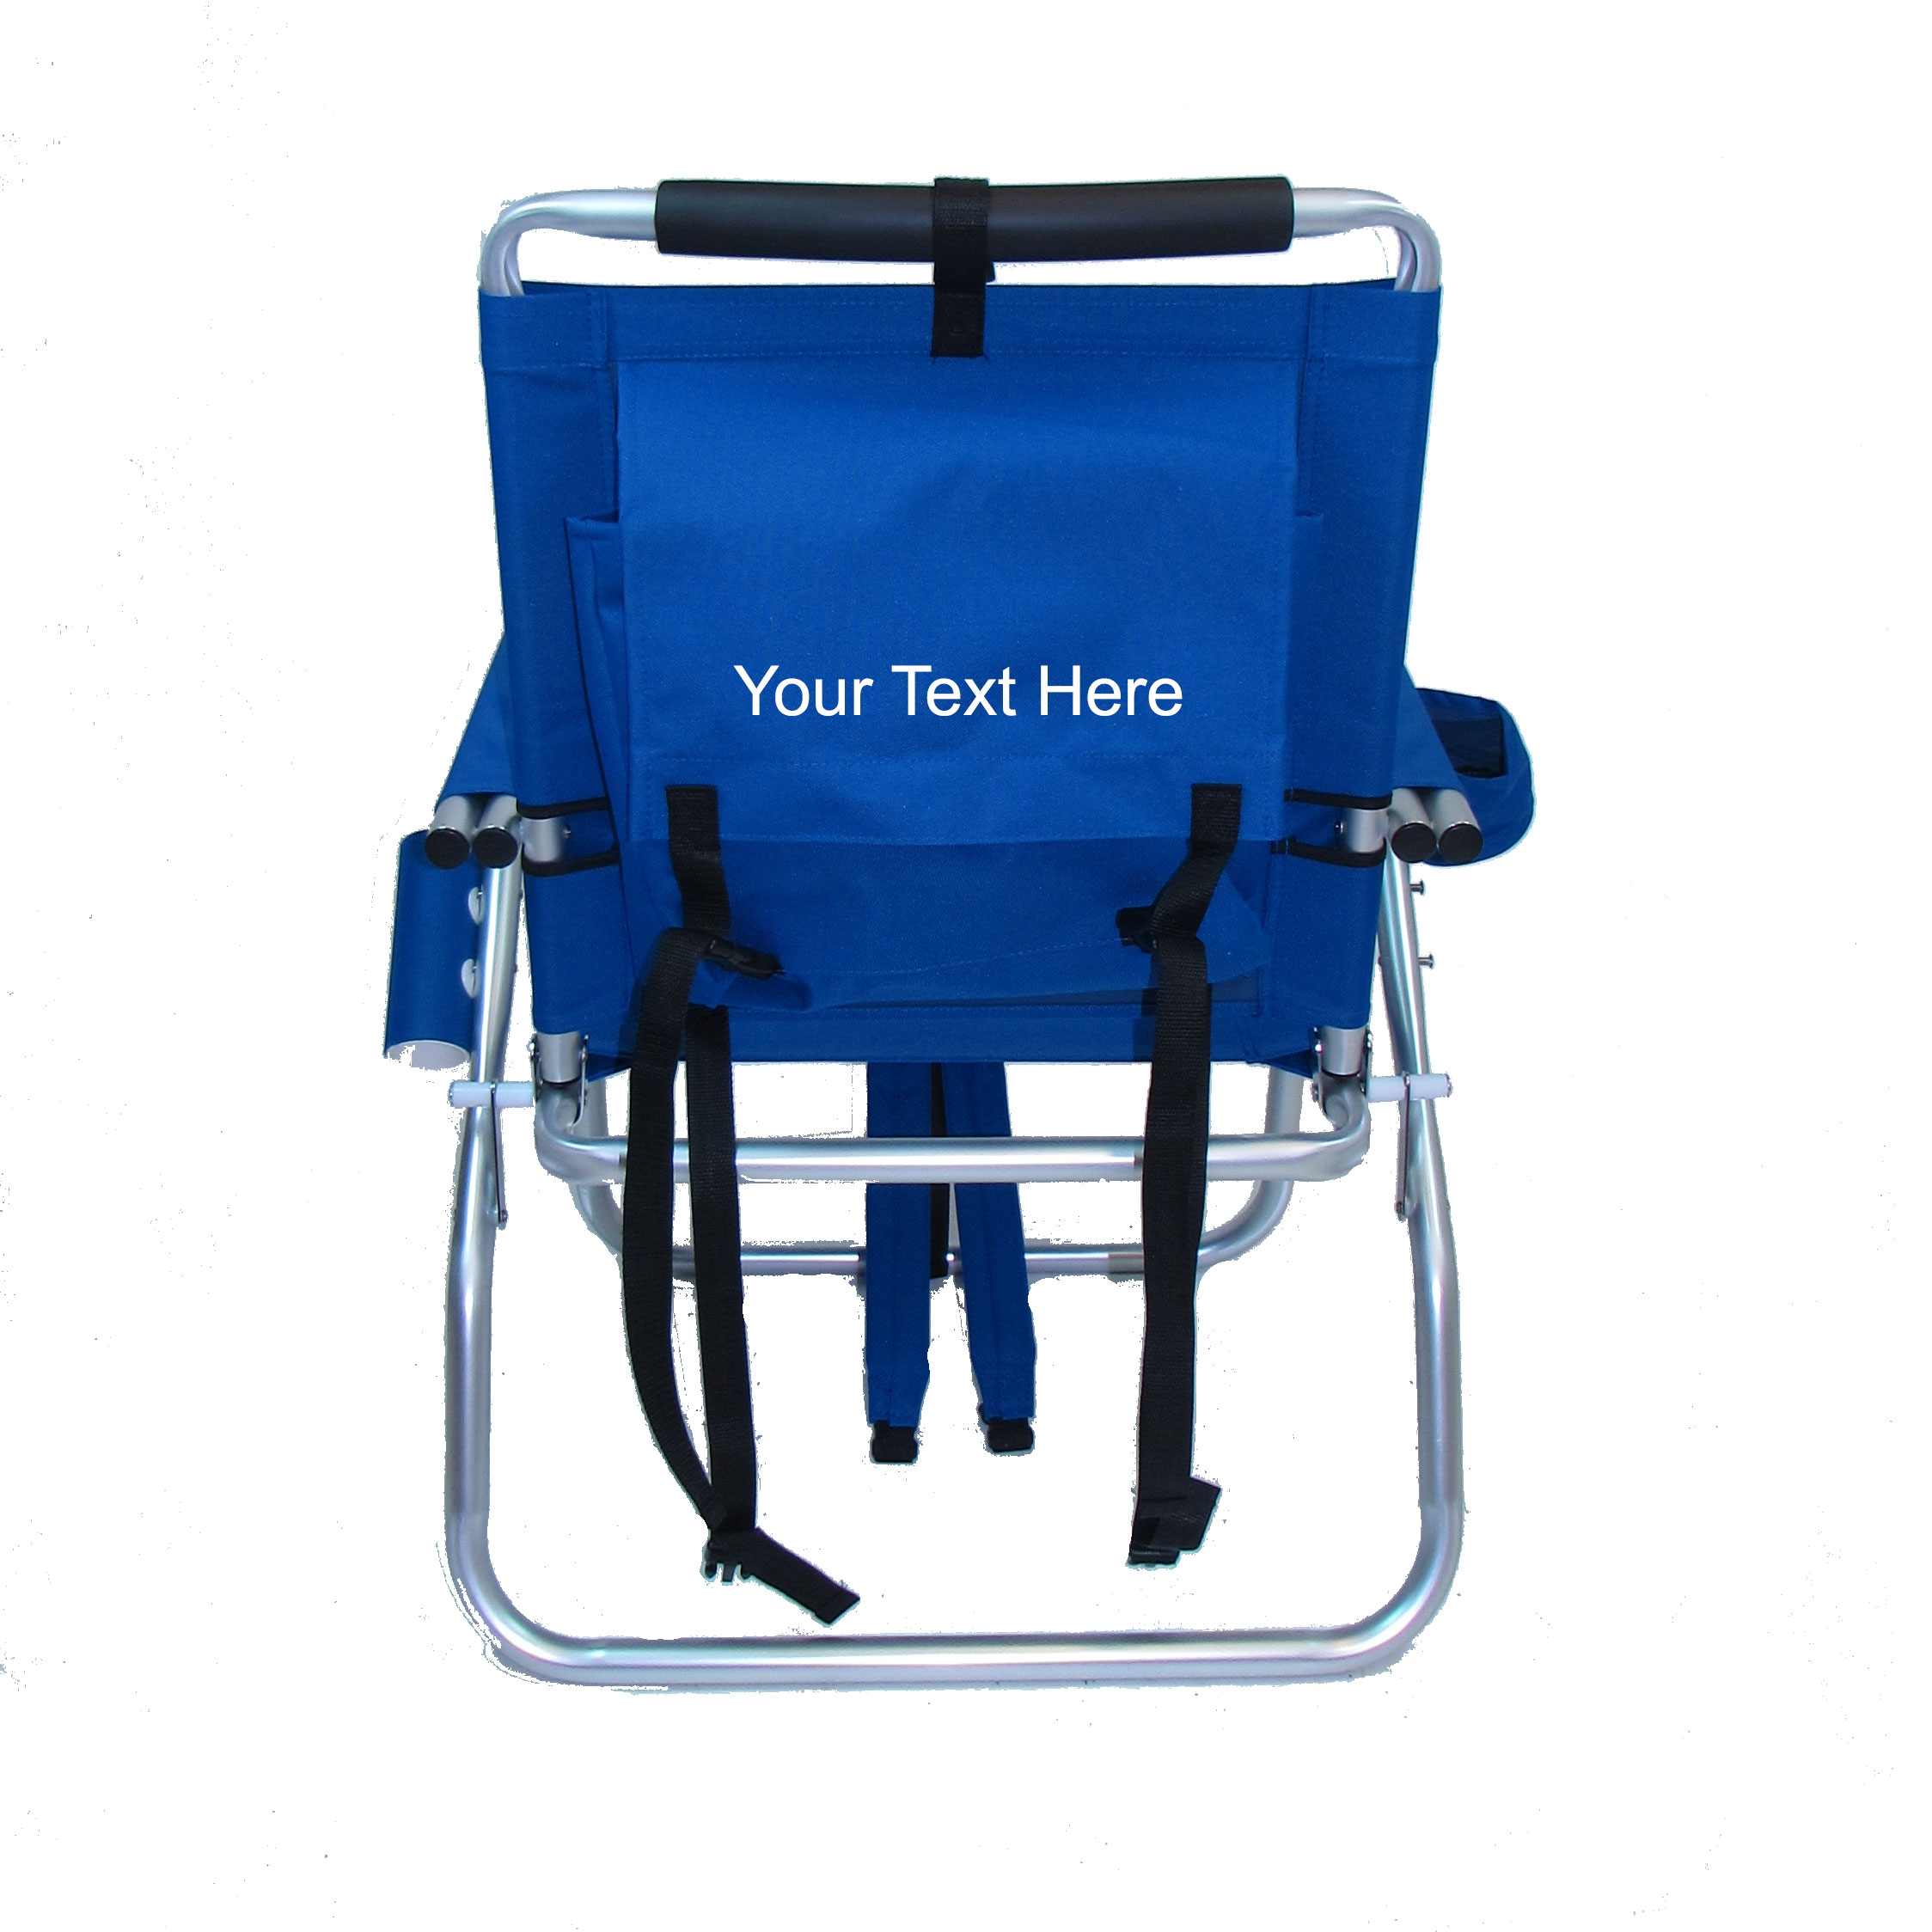 Imprinted Backpack Fishing Chair With Cup And Rod Holder